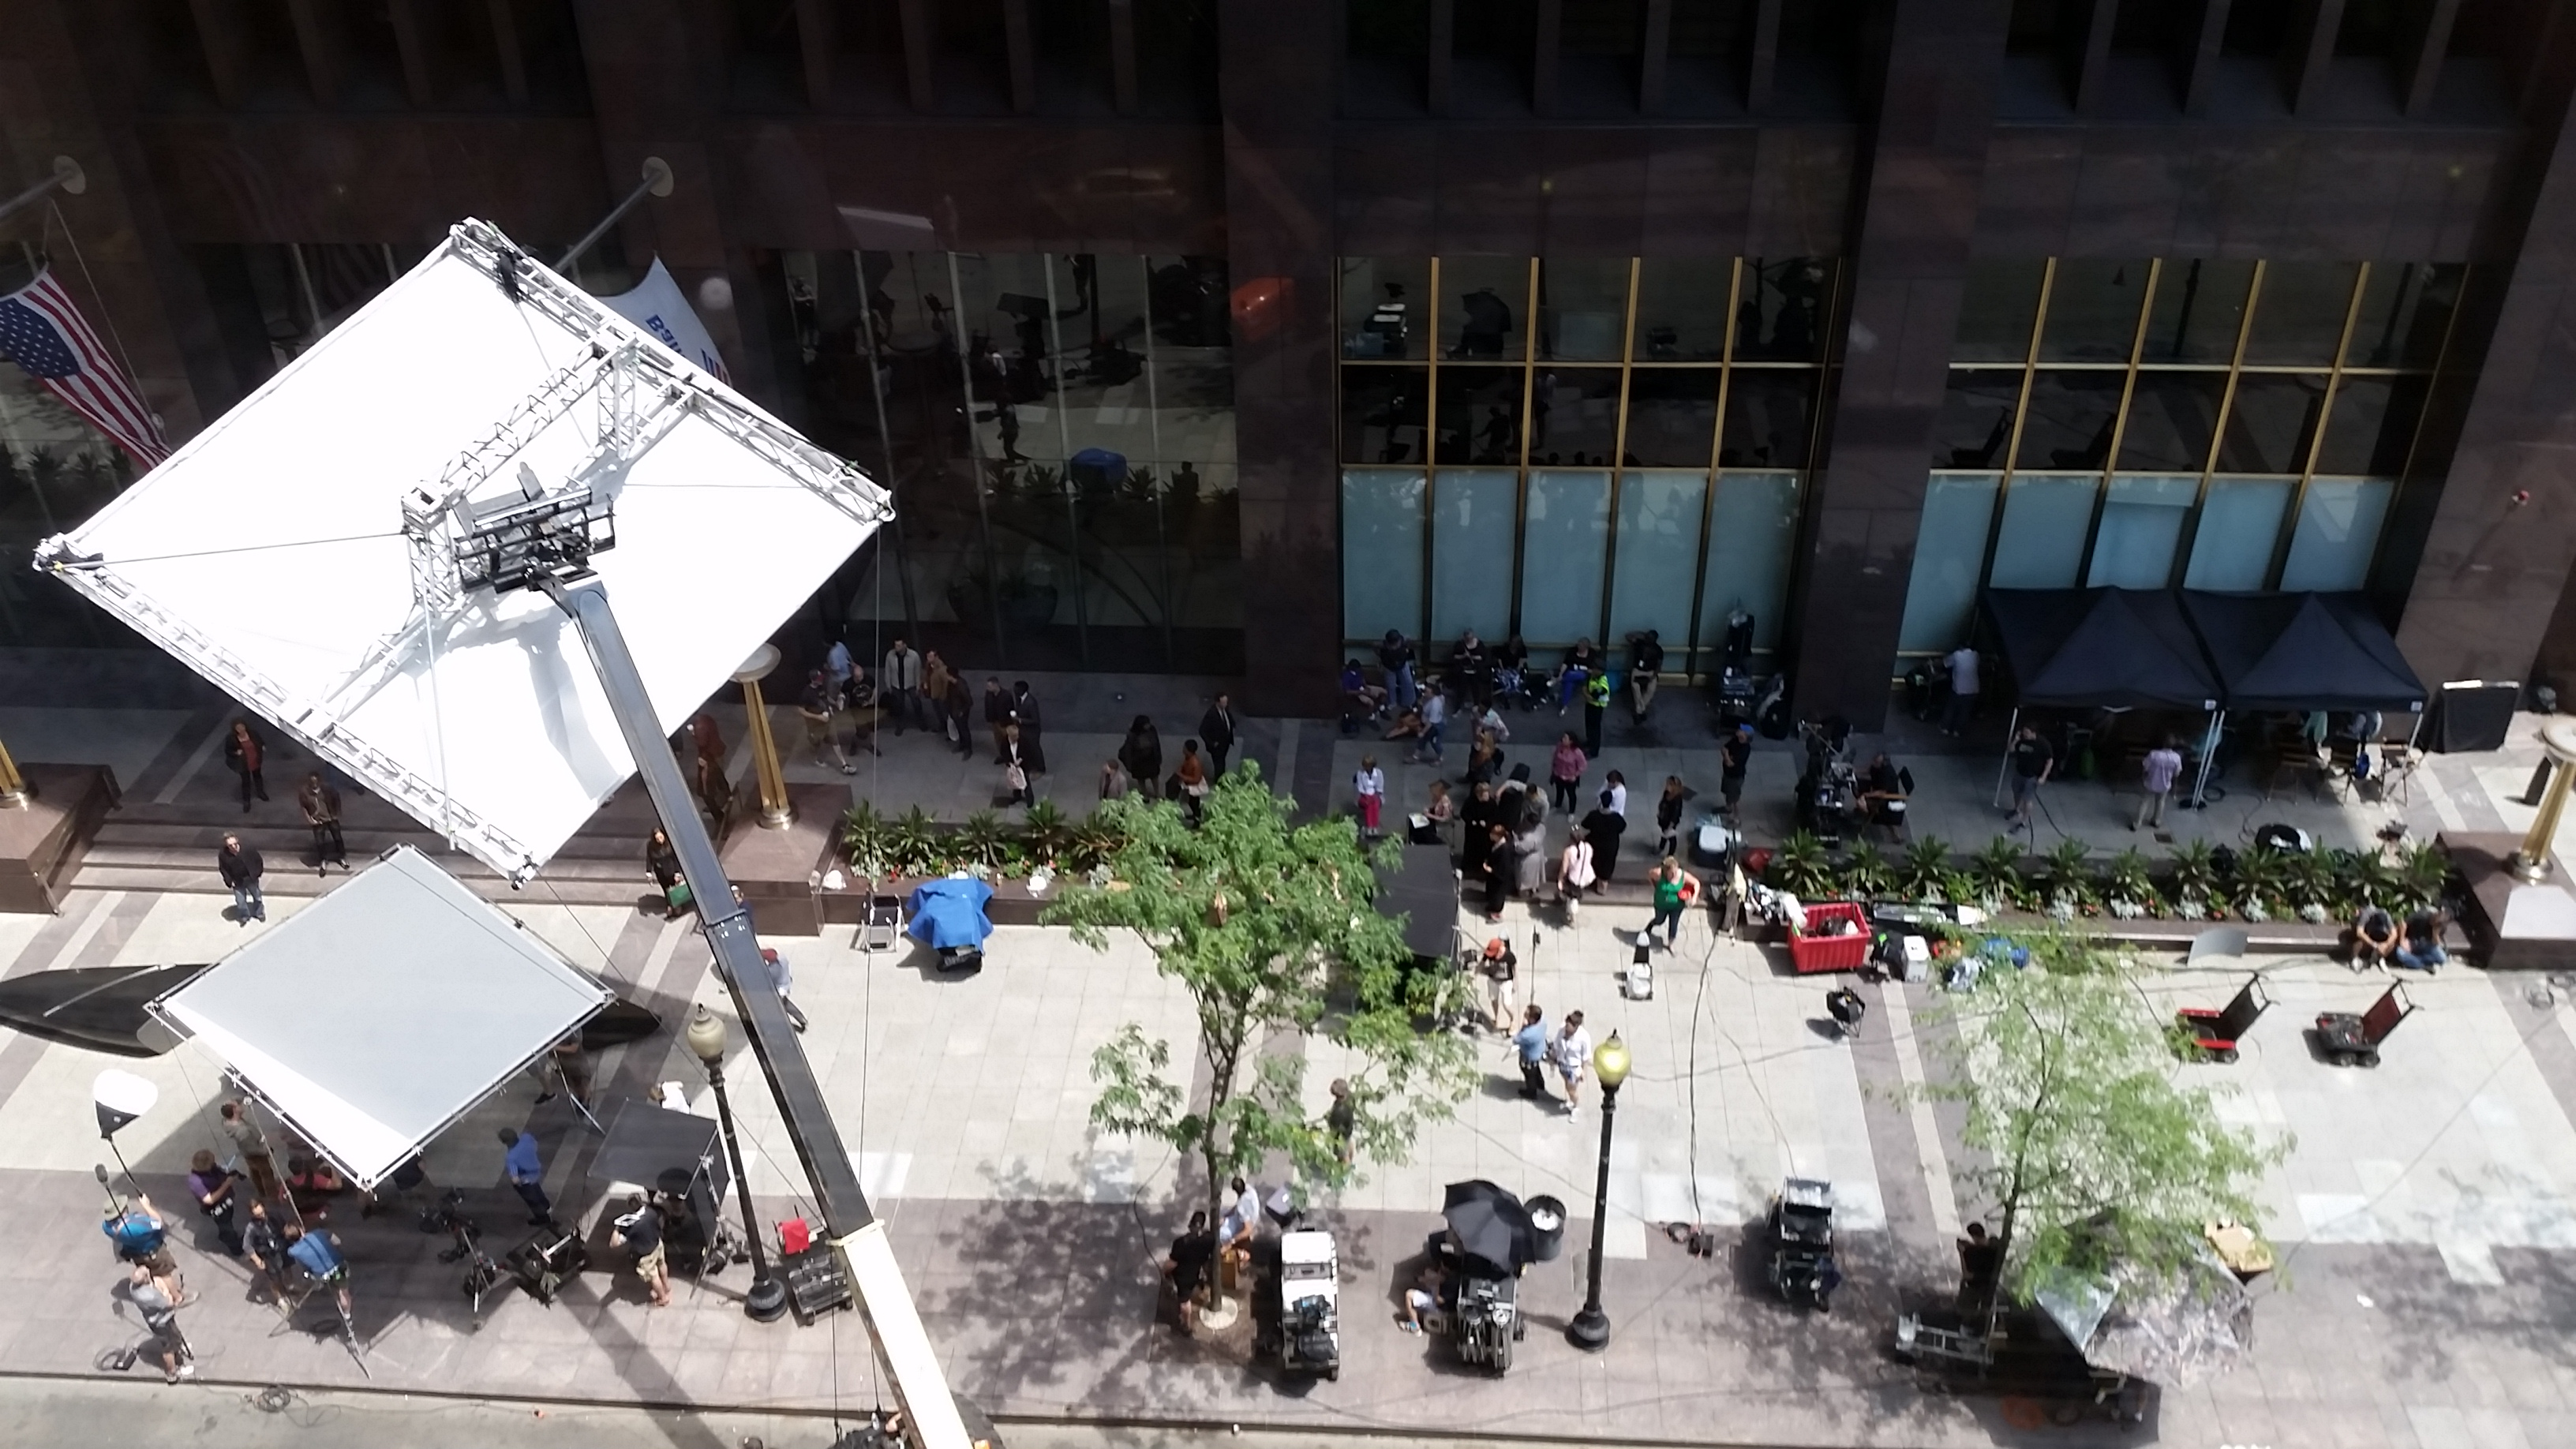 Film crews take over the streets of Boston for the filming of